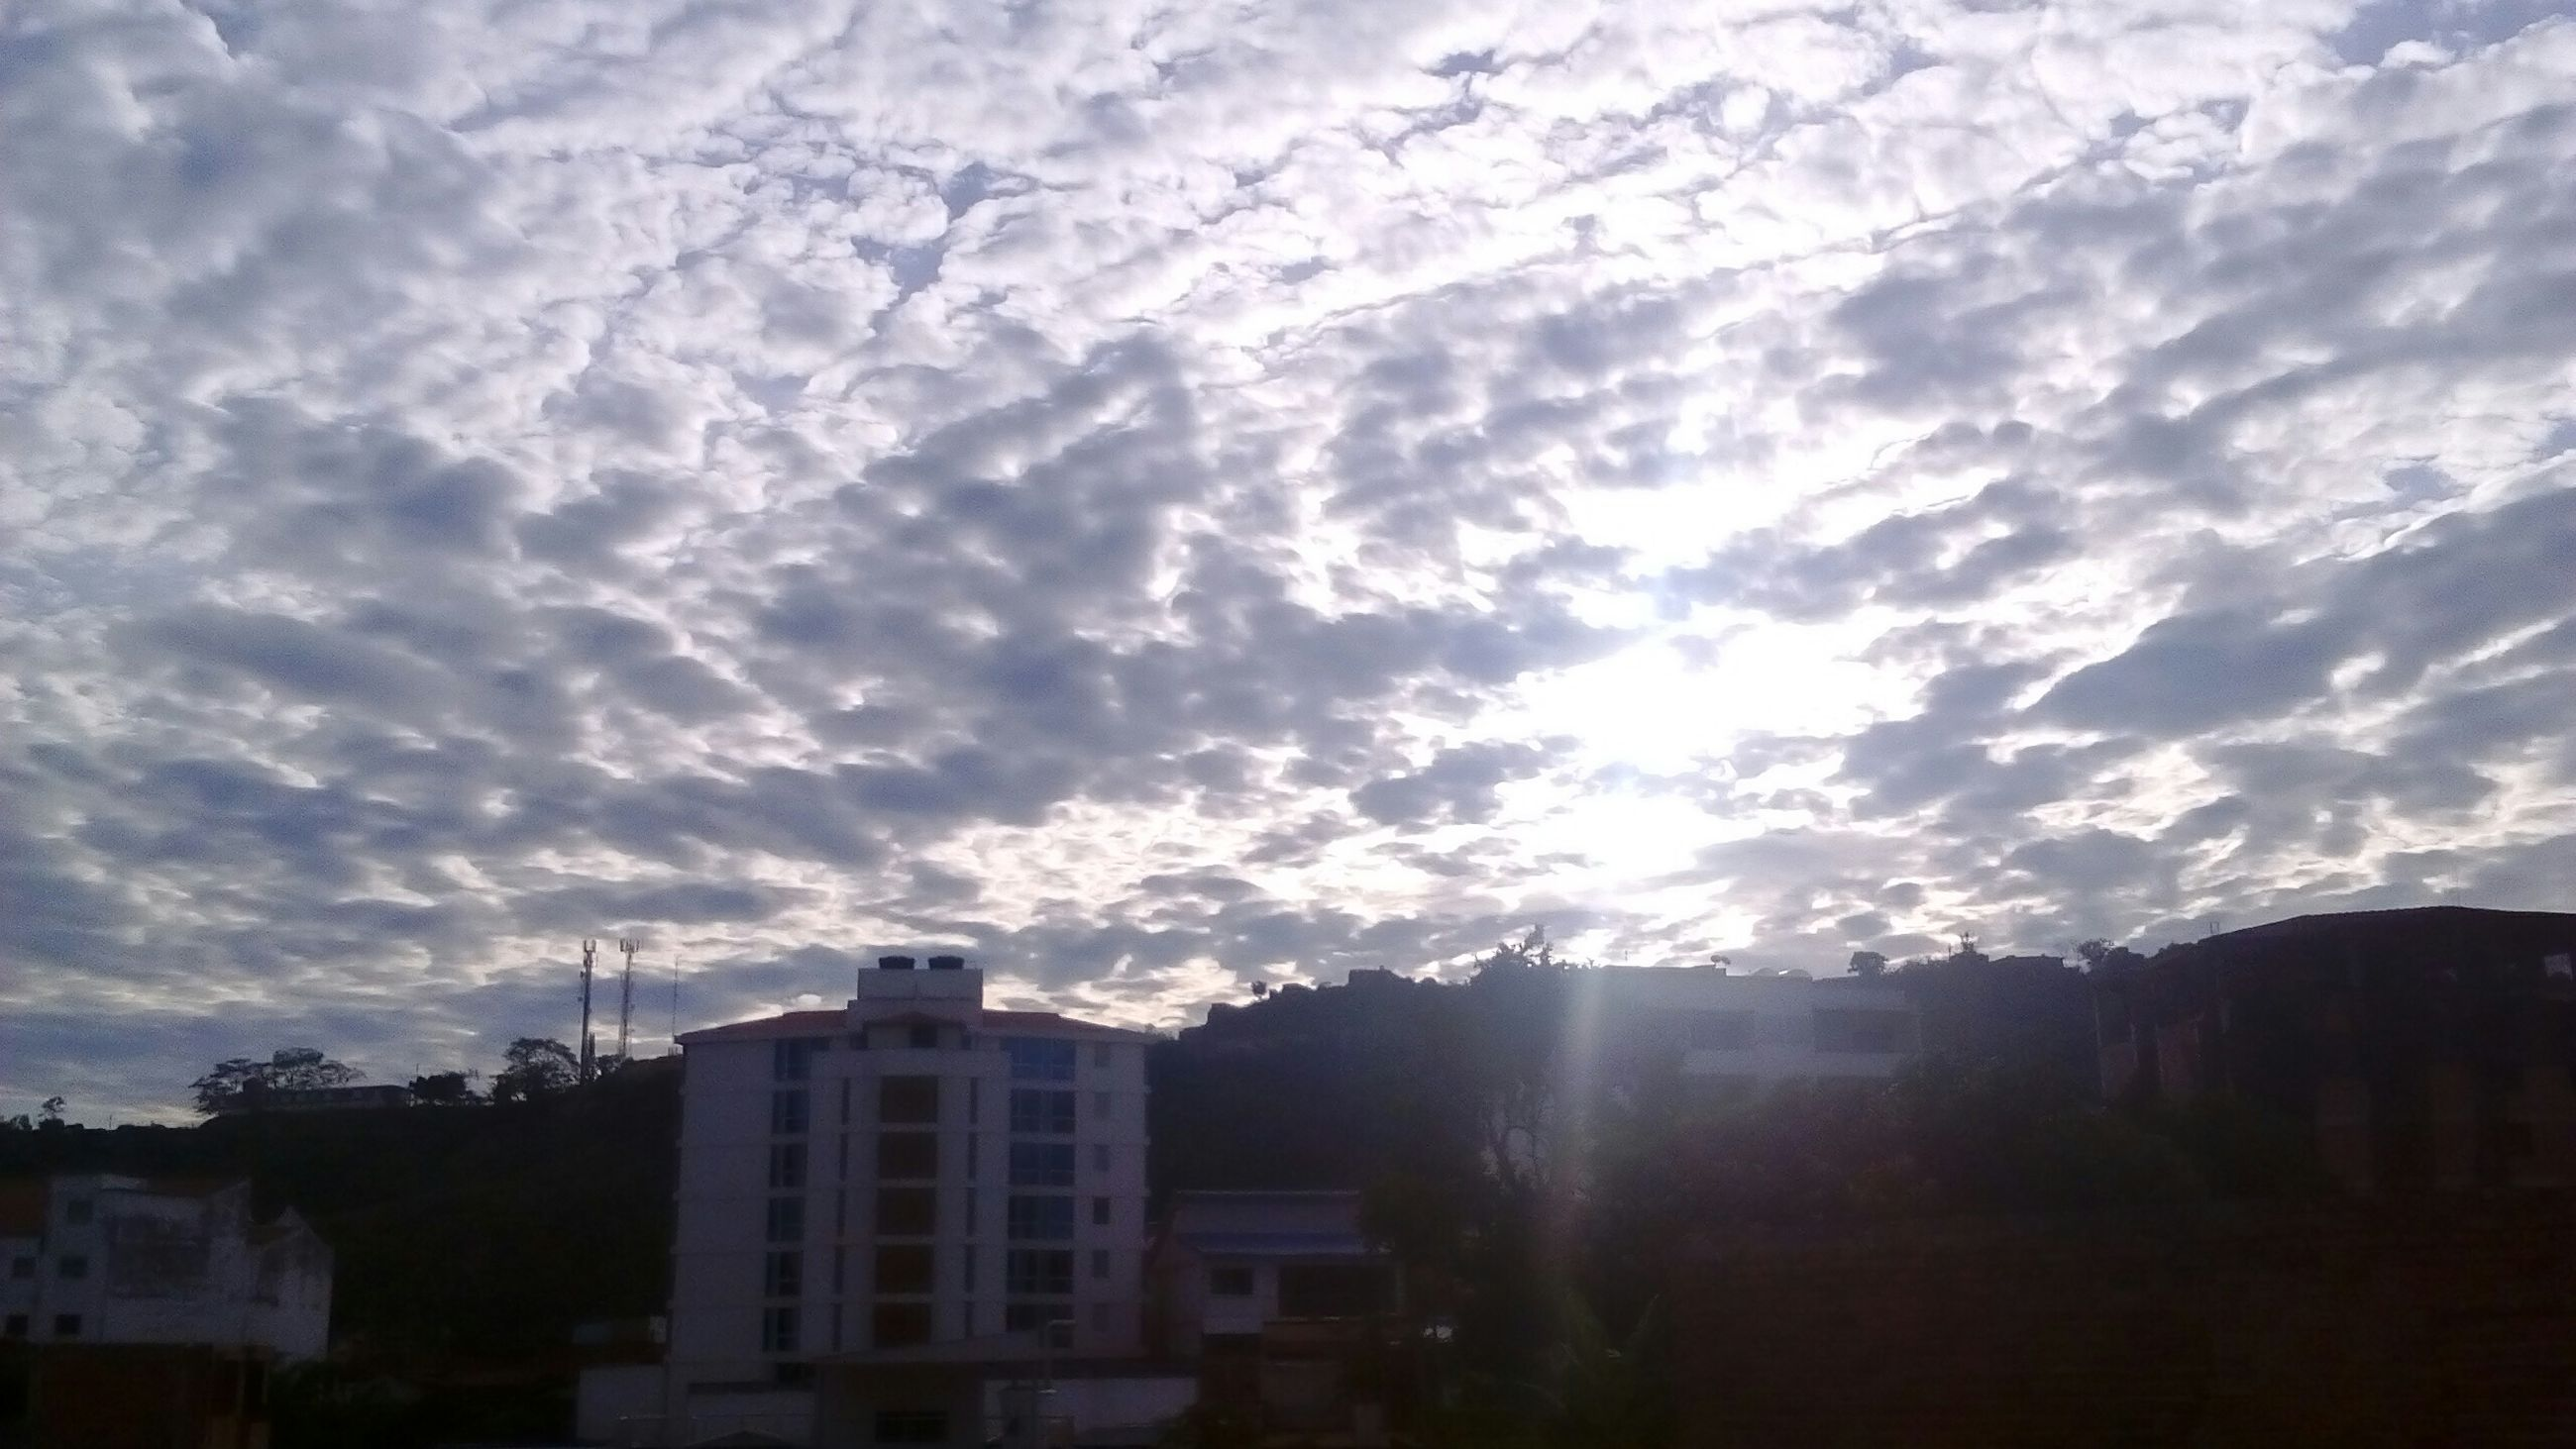 sky, cloud - sky, building exterior, architecture, built structure, cloudy, weather, cloud, beauty in nature, scenics, house, nature, sunbeam, sunset, tranquility, tranquil scene, mountain, silhouette, sunlight, landscape